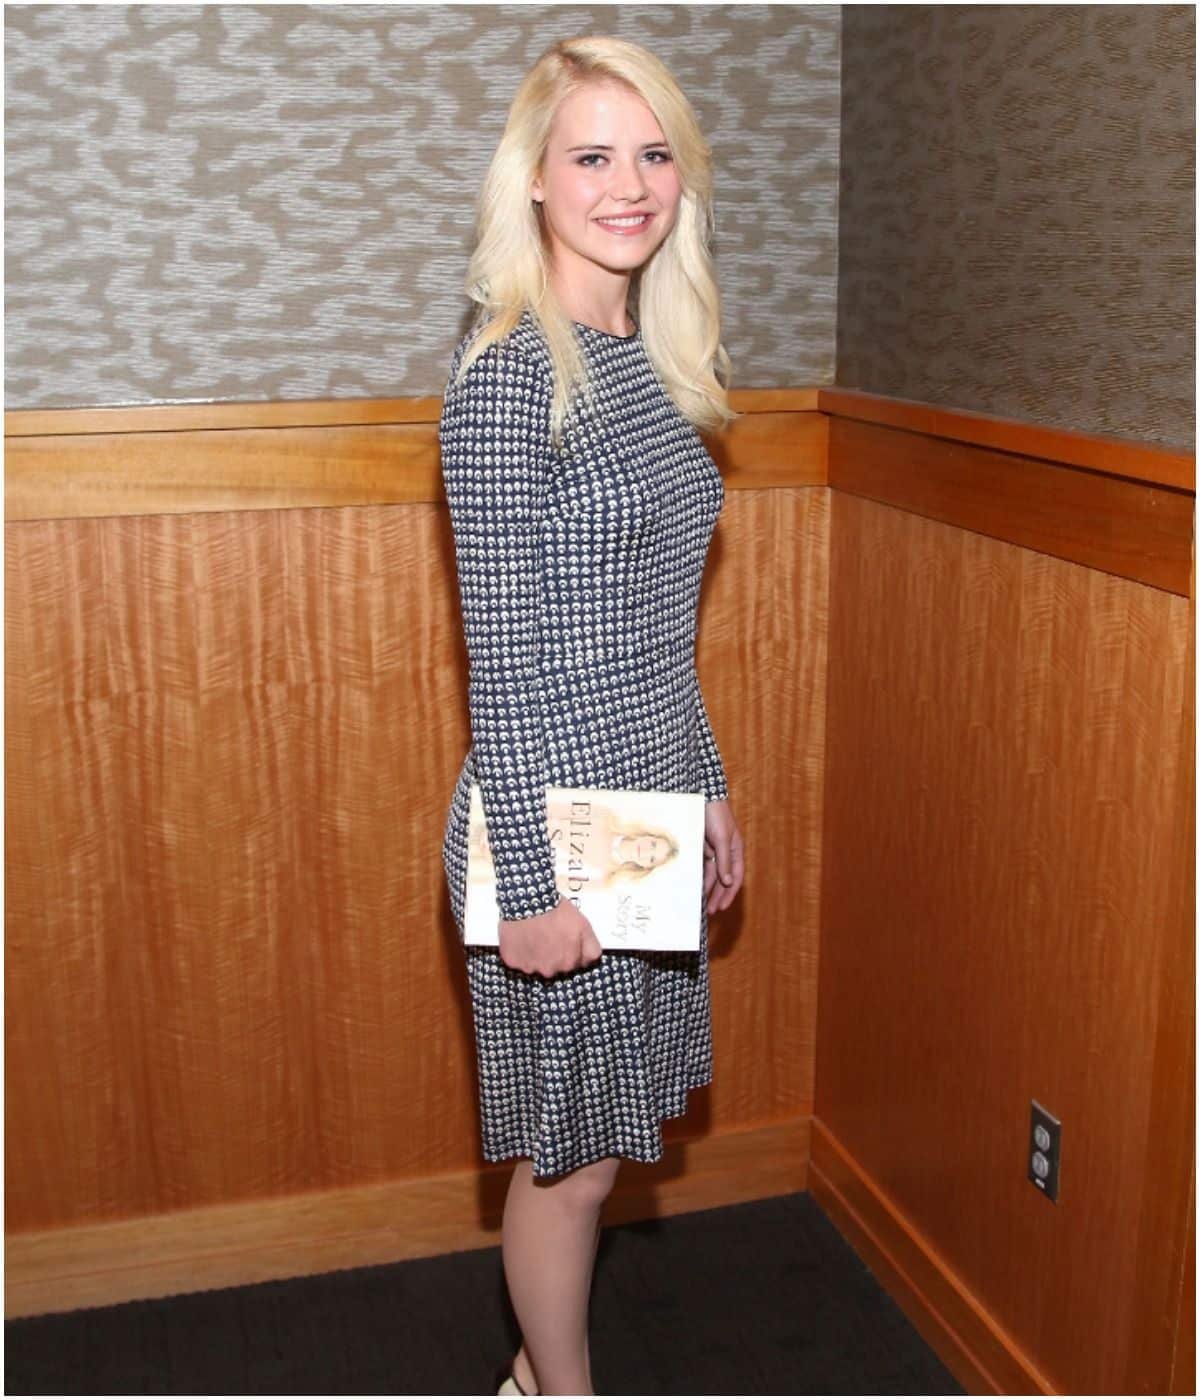 what is the net worth of Elizabeth Smart